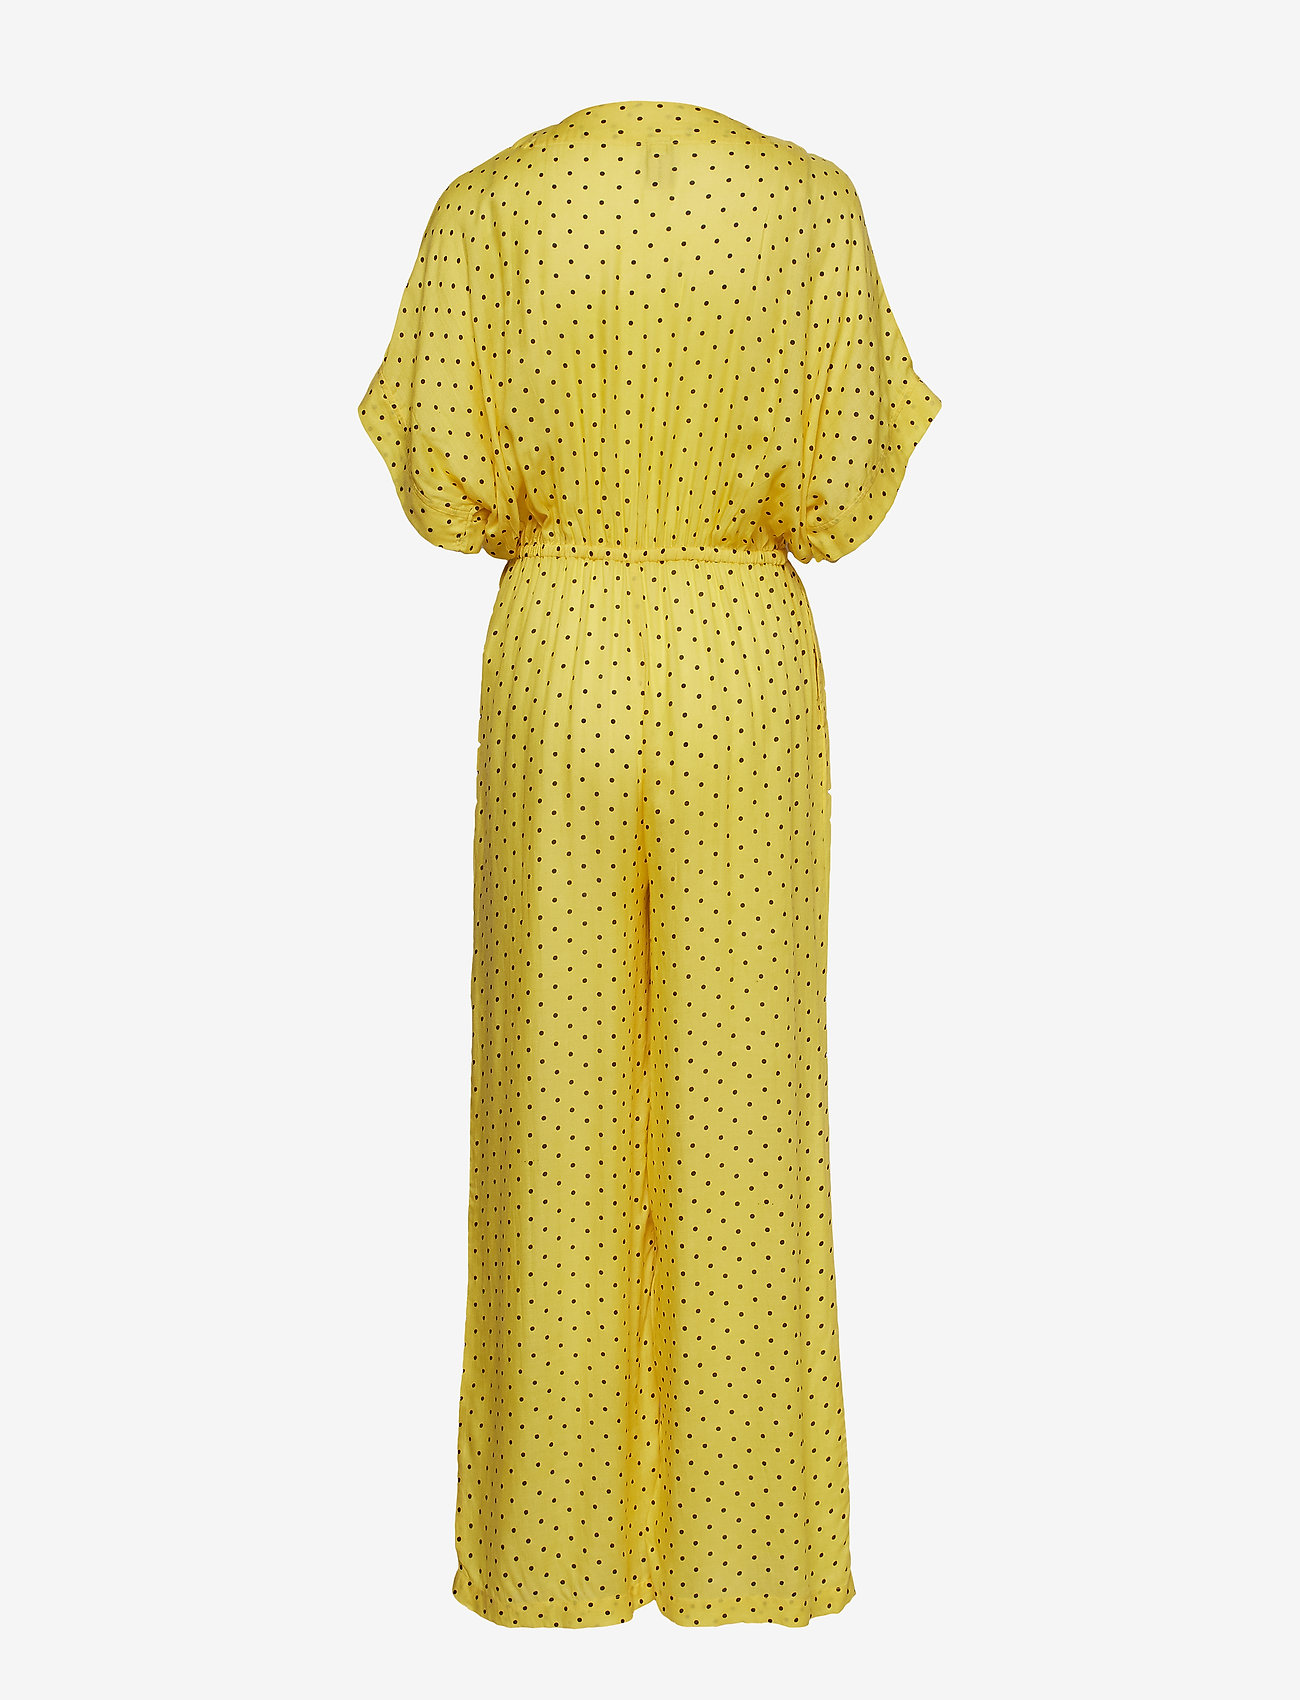 Underprotection - Donna jumpsuit - clothing - yellow - 2